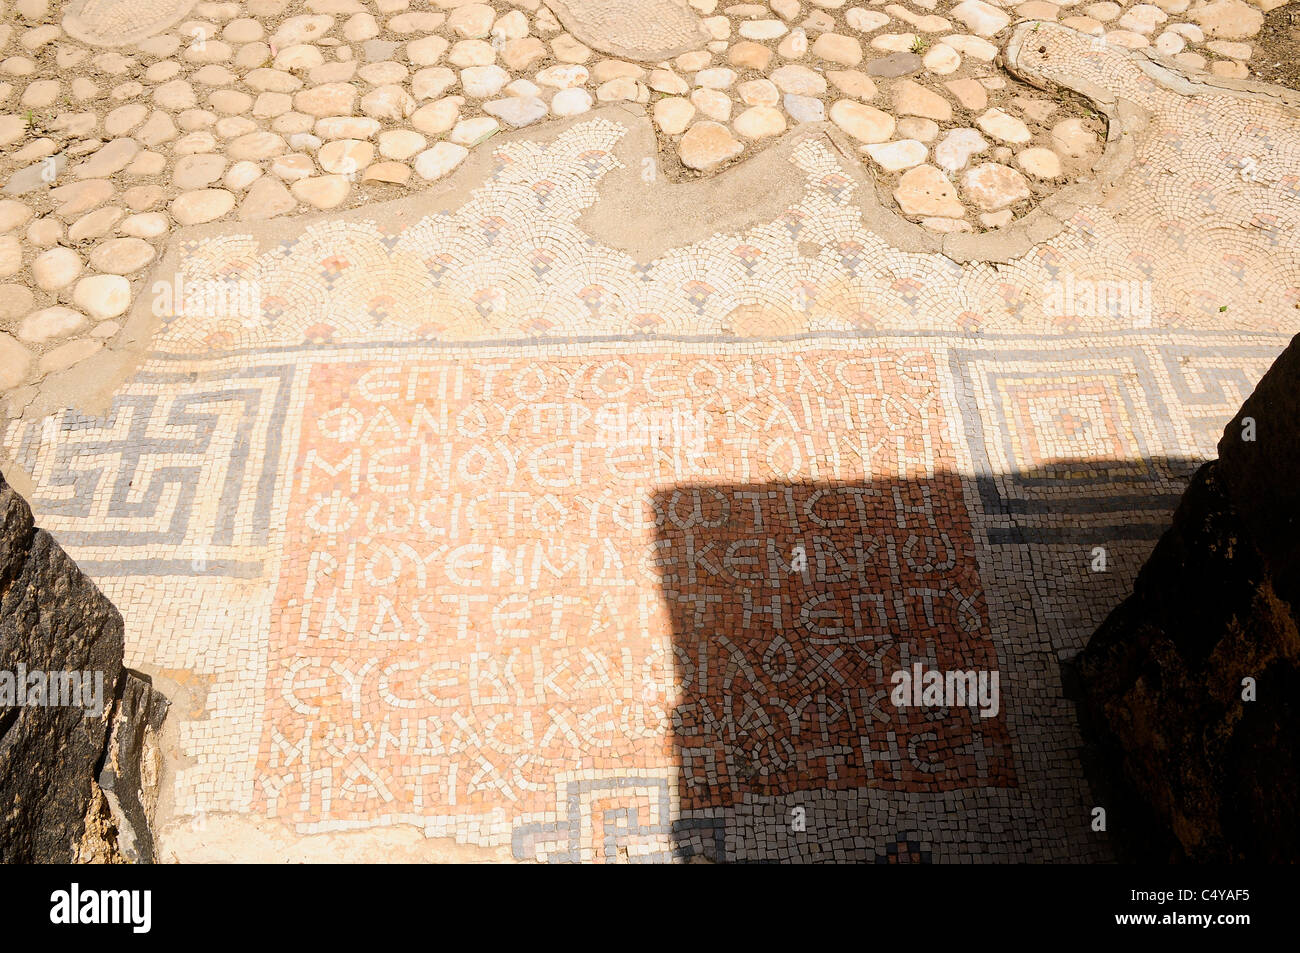 Kursi, Gergesa, Byzantine monastery and church with a mosaic floor - Stock Image